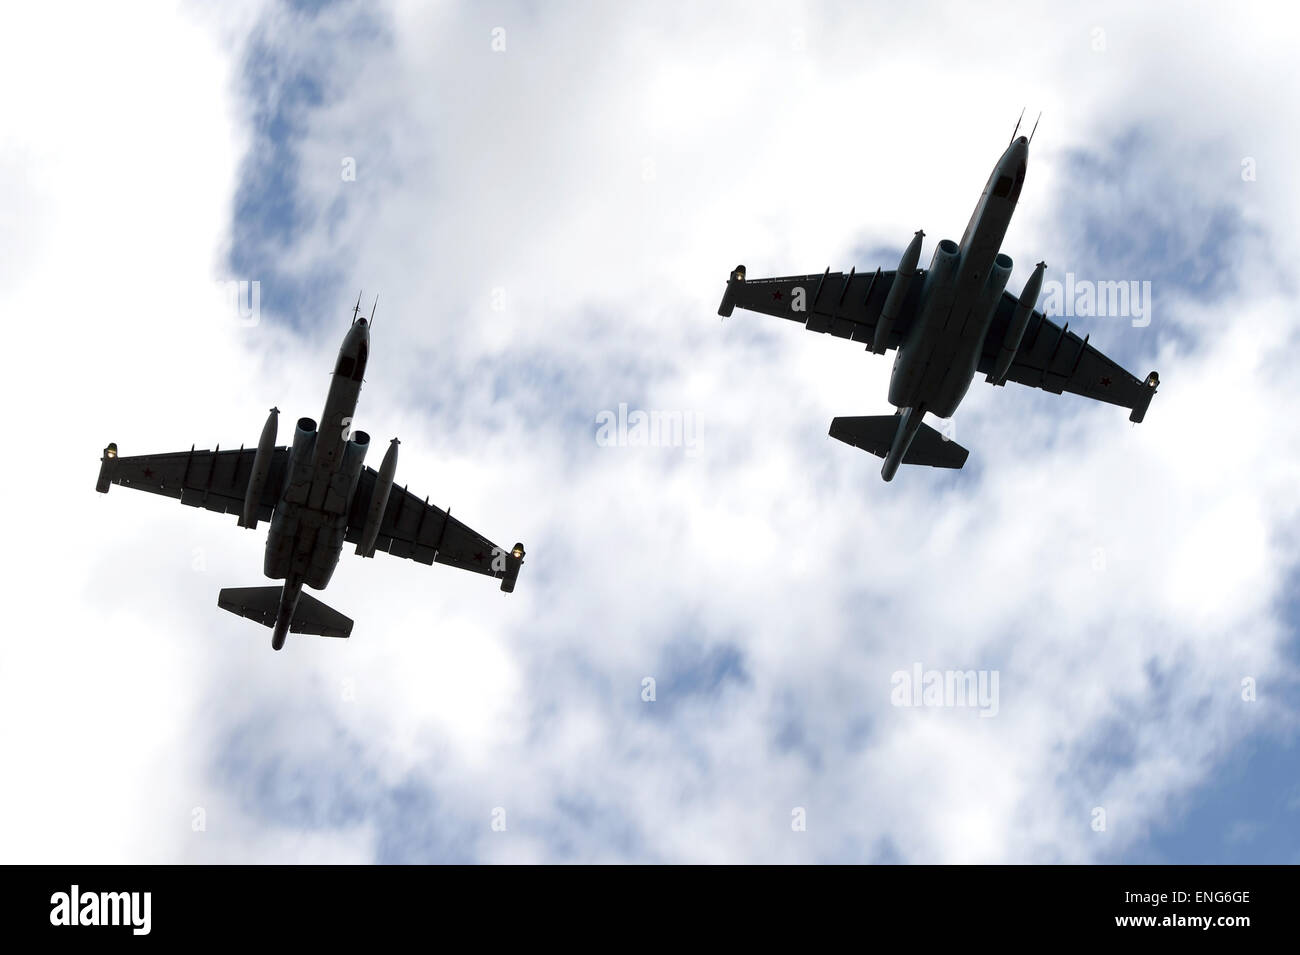 Moscow, Russia. 5th May, 2015. Jet air supporters Sukhoi Su-25 fly during the miliary parade rehearsal in Kubinka, Stock Photo